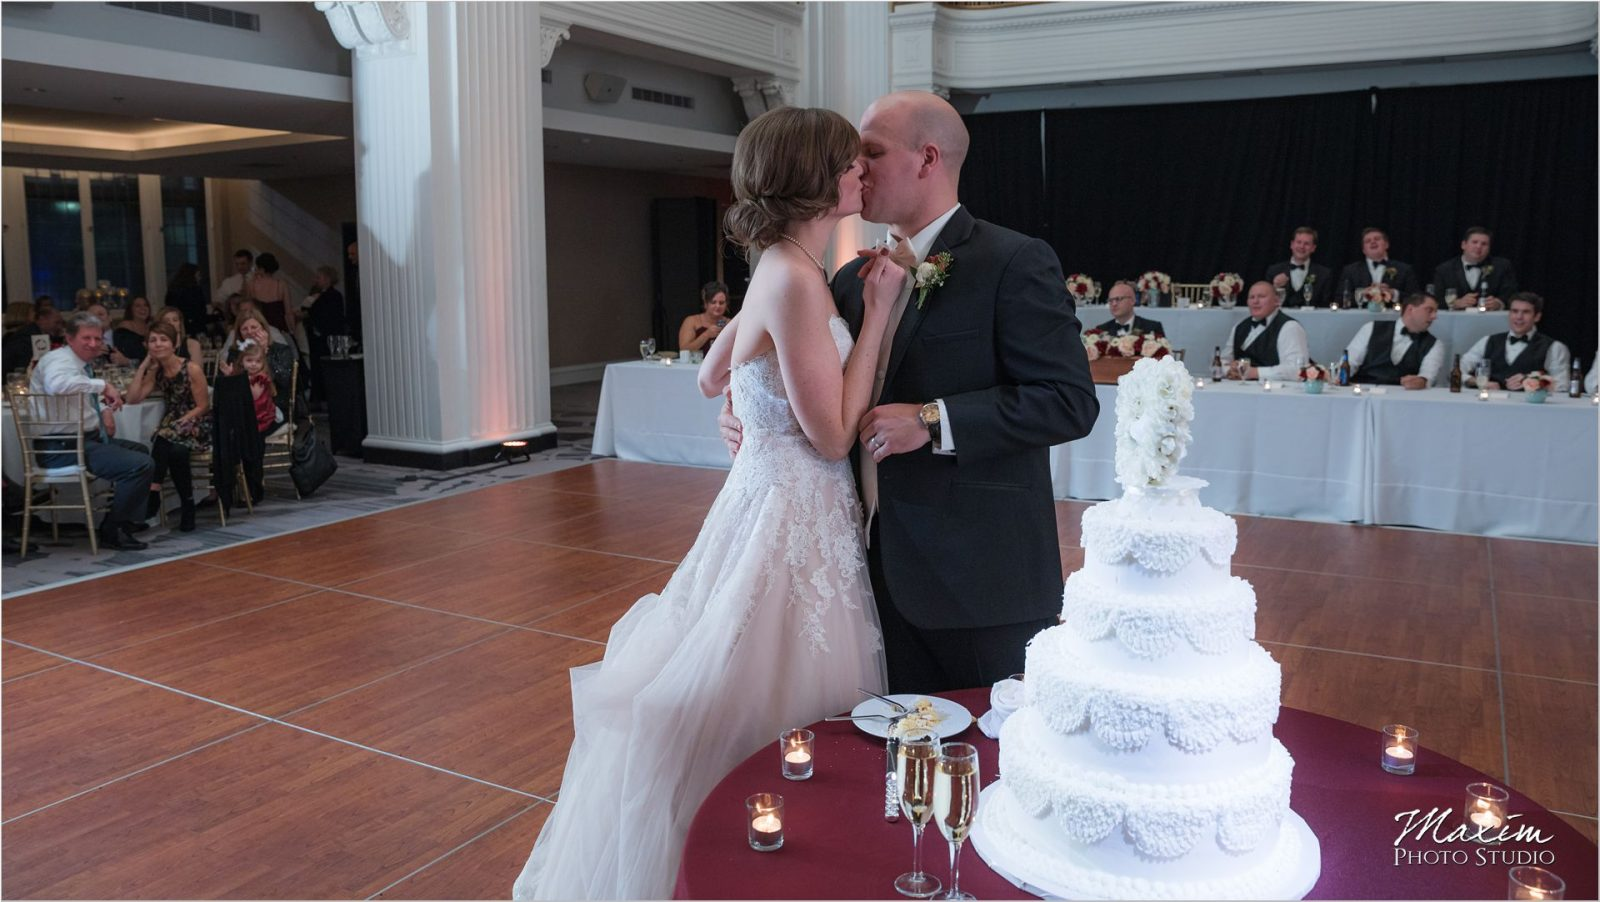 Little Dutch Bakery Renaissance Hotel Wedding